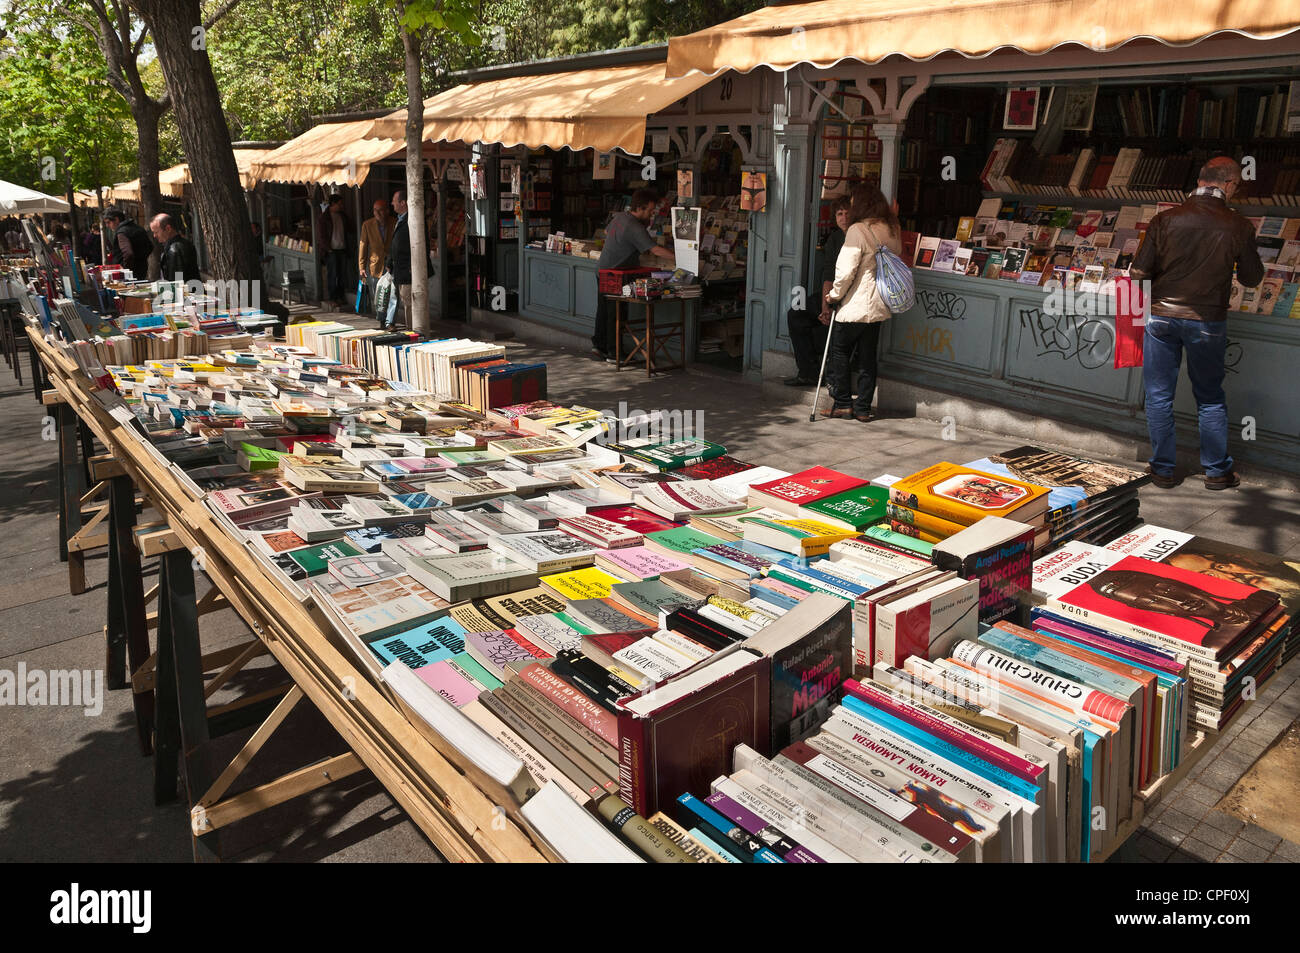 Book stalls in the Cuesta de Claudio Moyano next to the Retiro Park at the bottom end of the Paseo del Prado, Madrid, - Stock Image